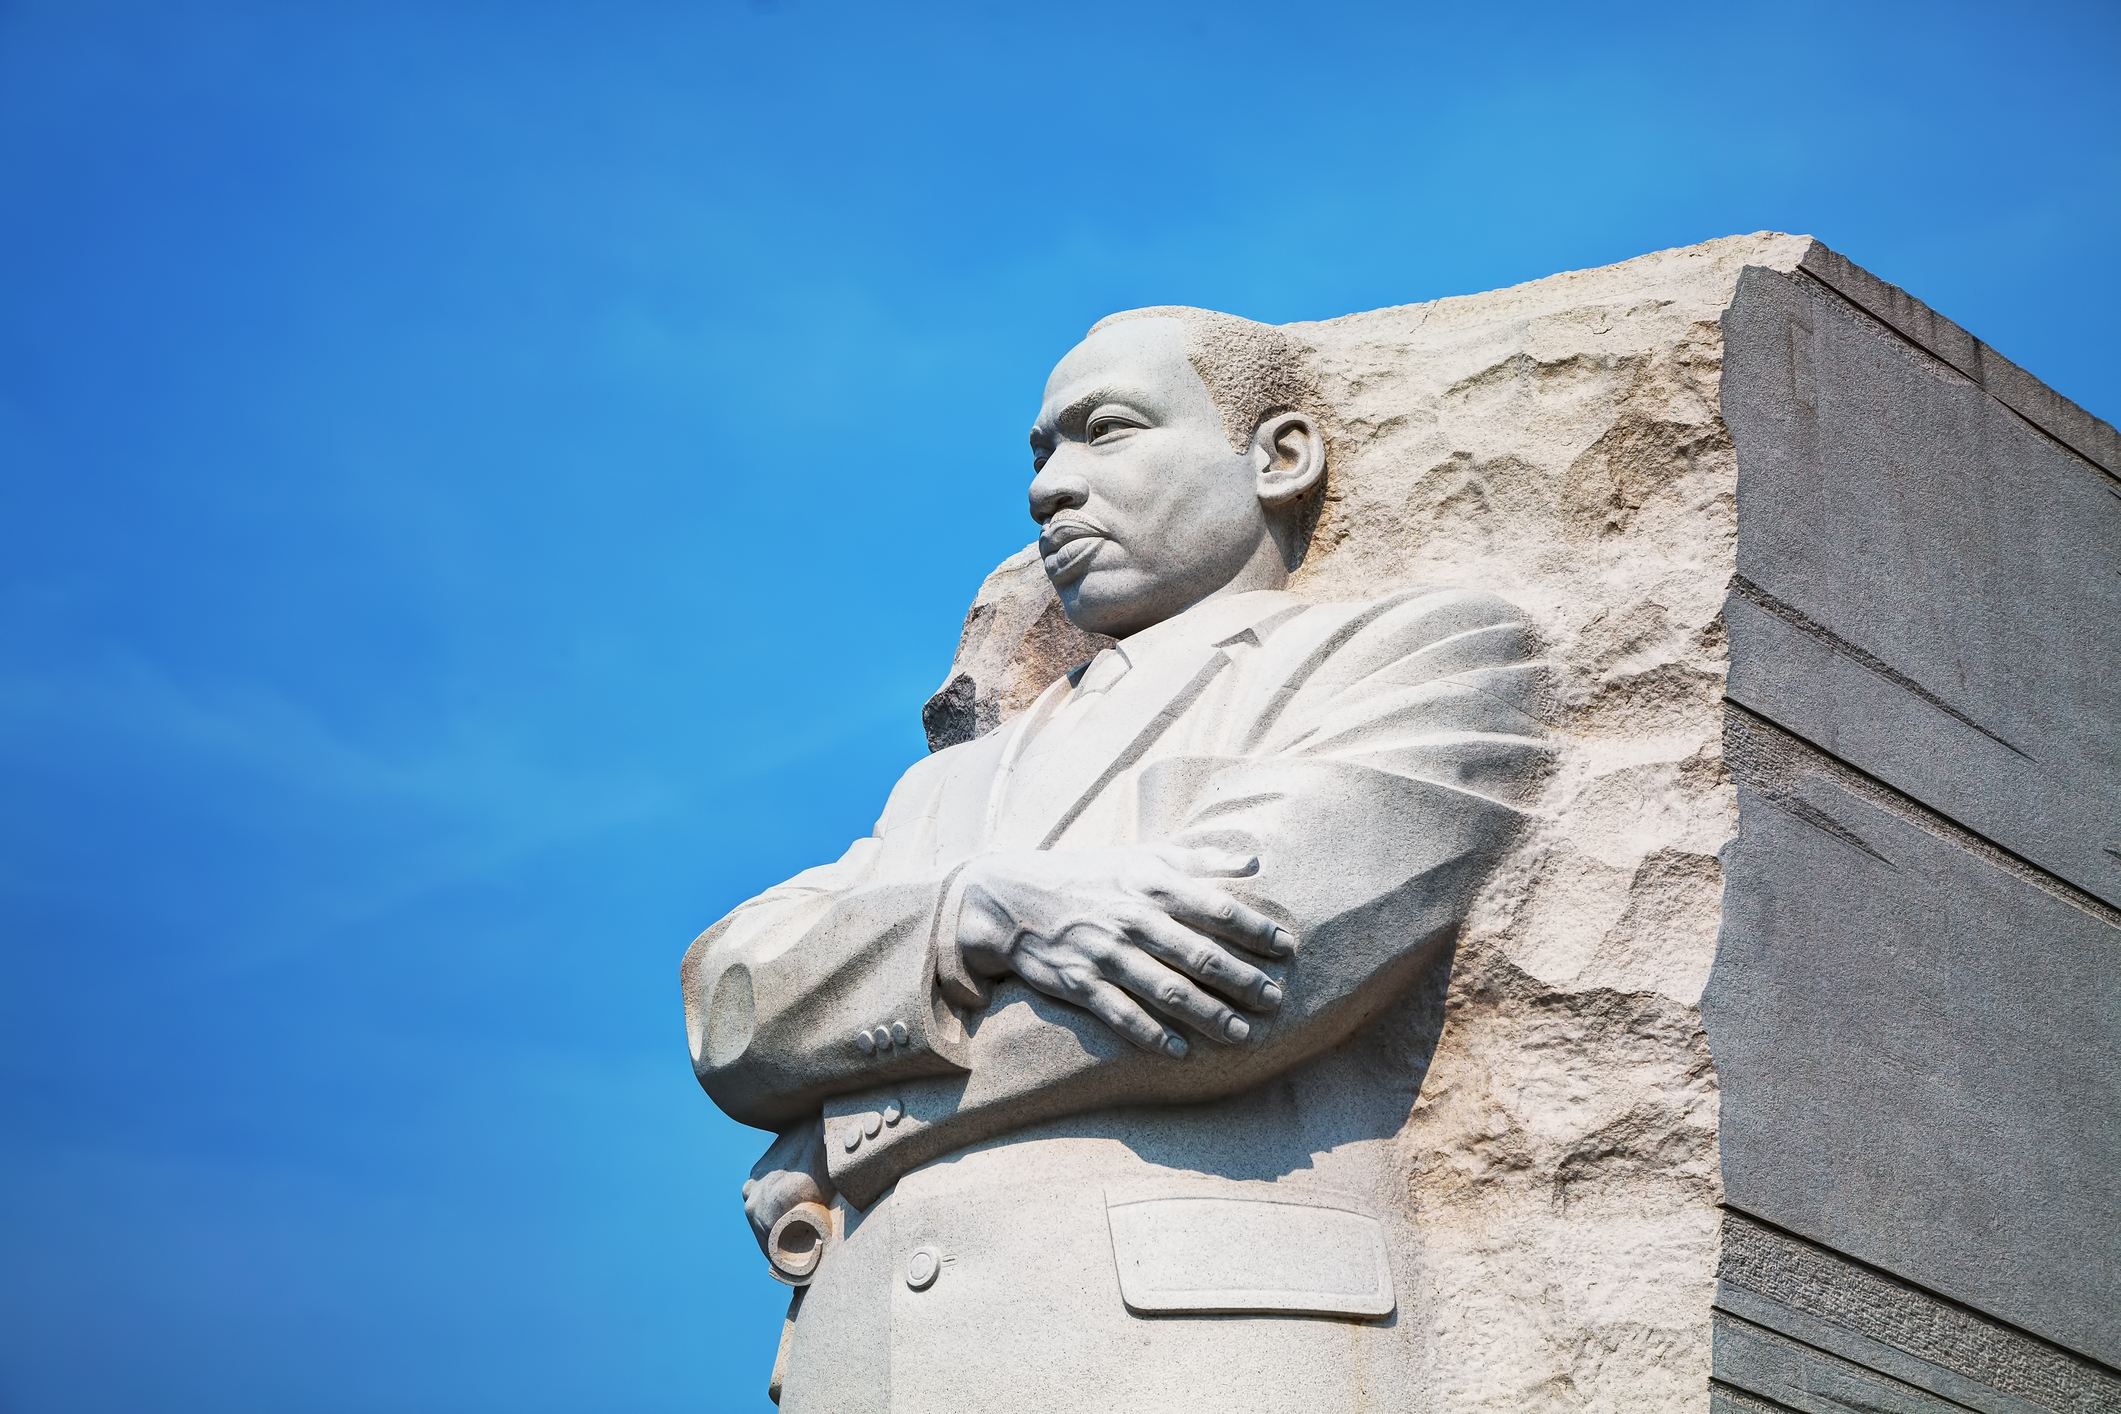 Statue of Martin Luther King, Jr